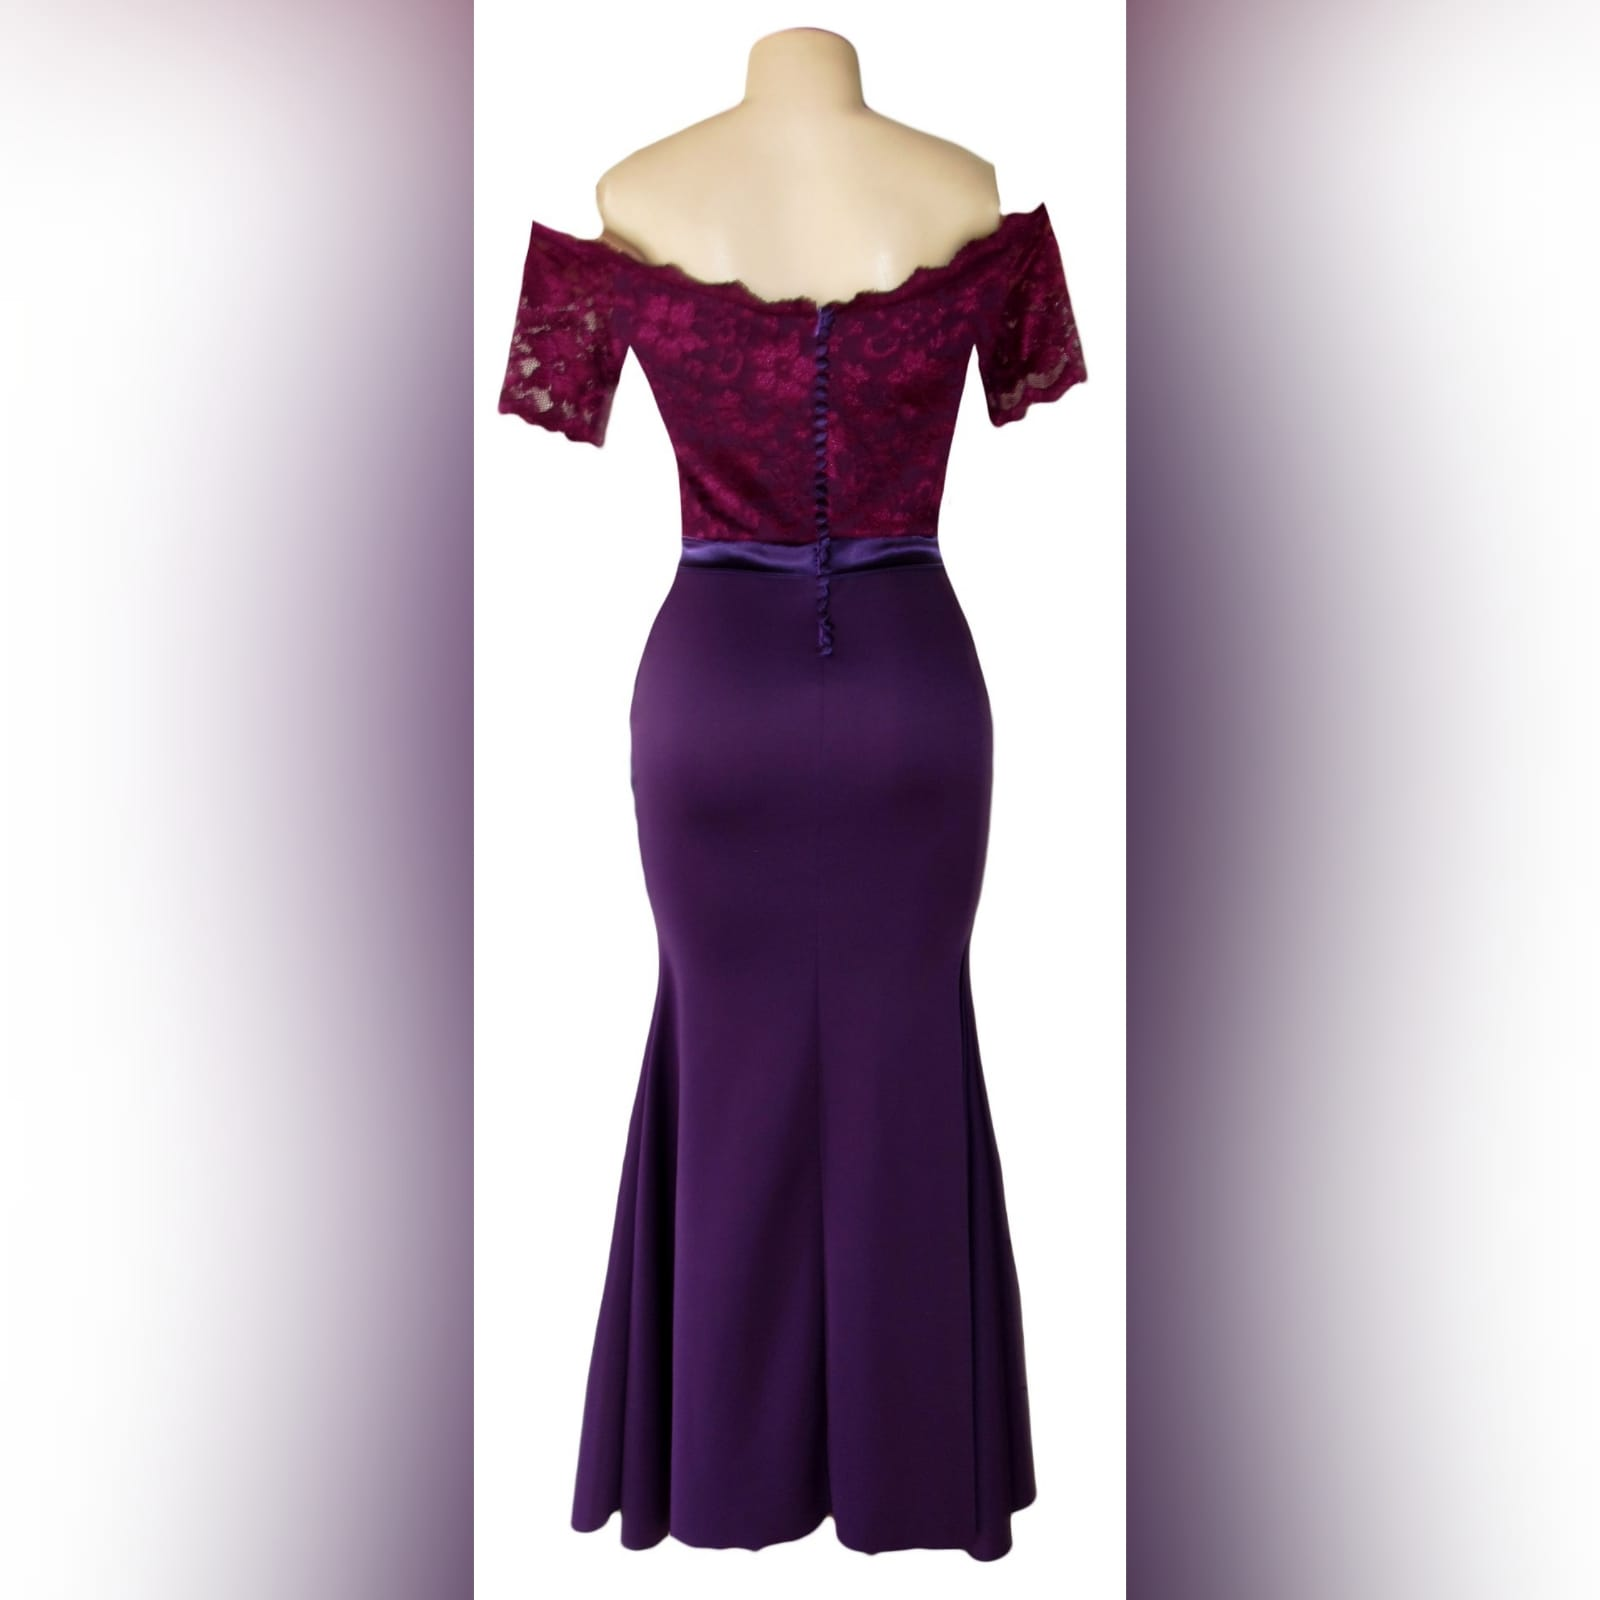 Off shoulder 2 tone purple soft mermaid bridesmaid dress 3 off shoulder 2 tone purple soft mermaid bridesmaid dress with a lace bodice. Detailed with a satin belt and buttons.